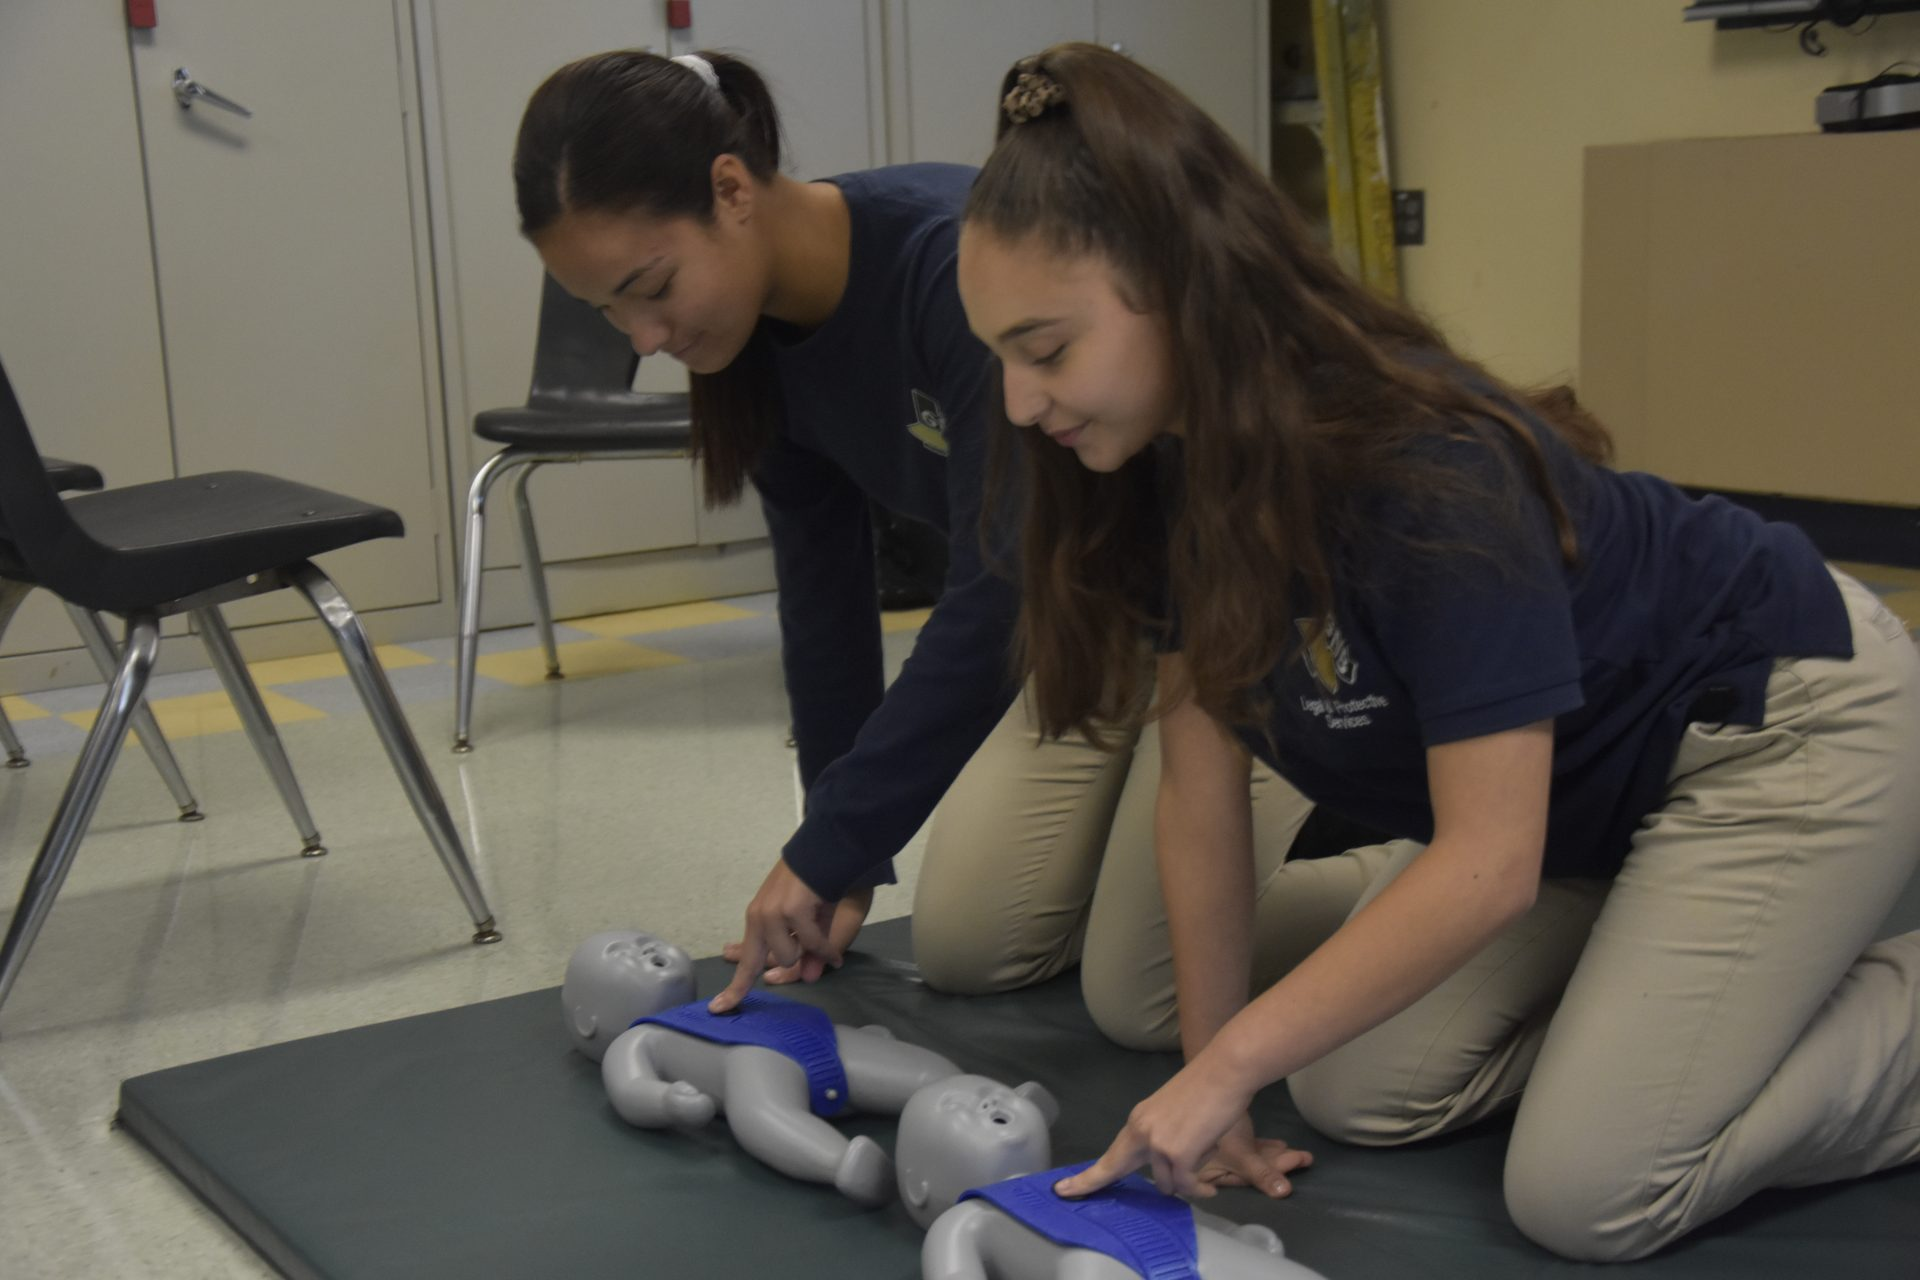 Students practicing CPR on baby dummies